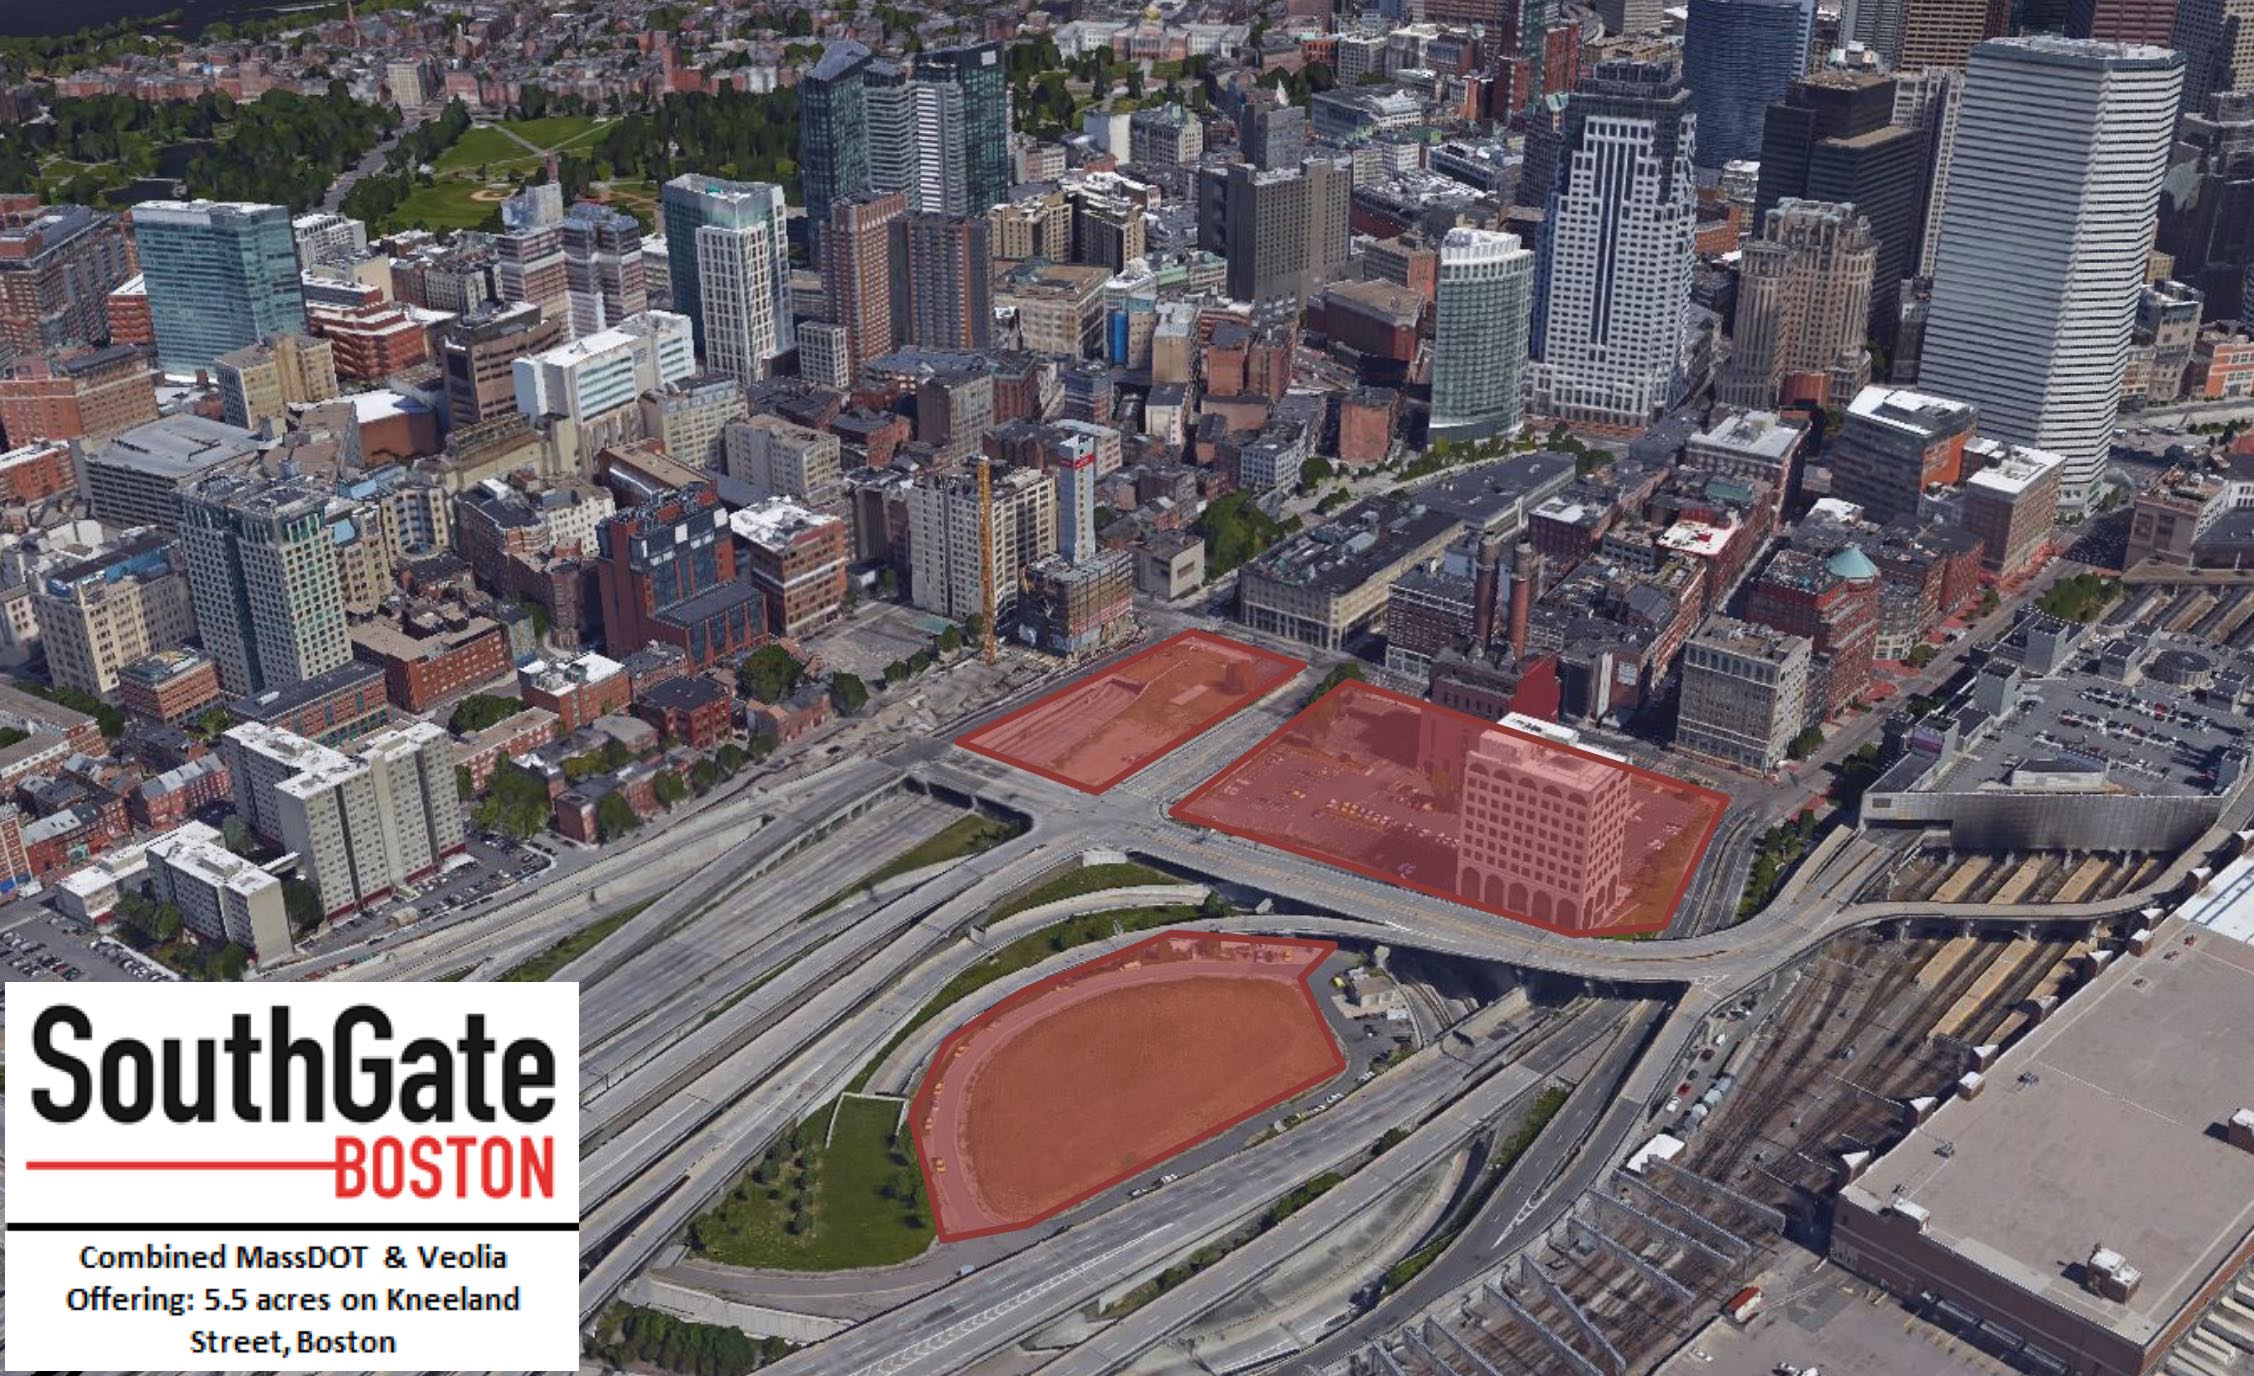 Bldup - No bidders for SouthGate Boston, 7 5 acres of state